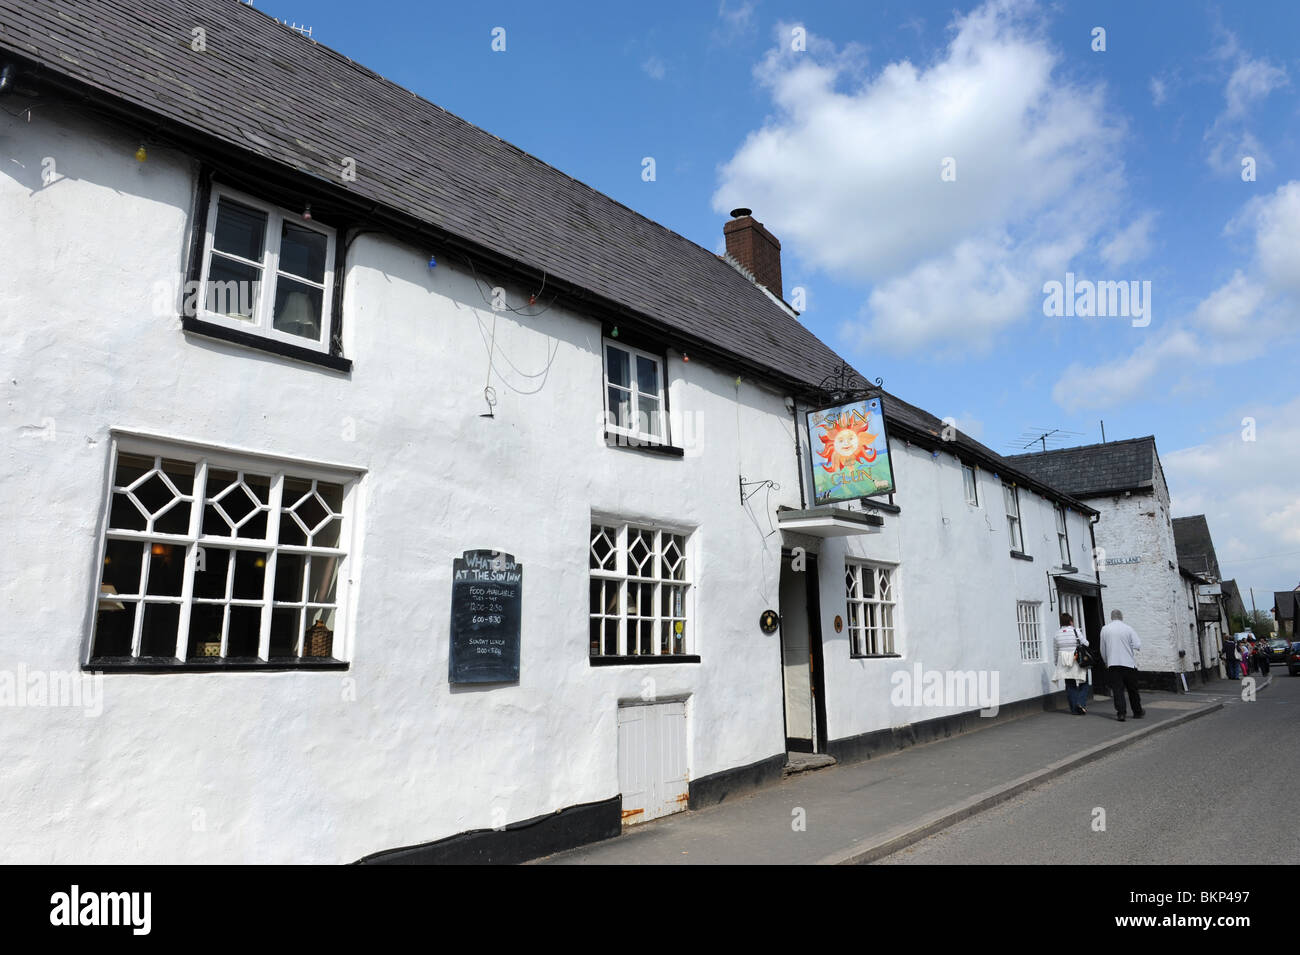 The Sun Inn at The English village of Clun in South Shropshire England Uk - Stock Image